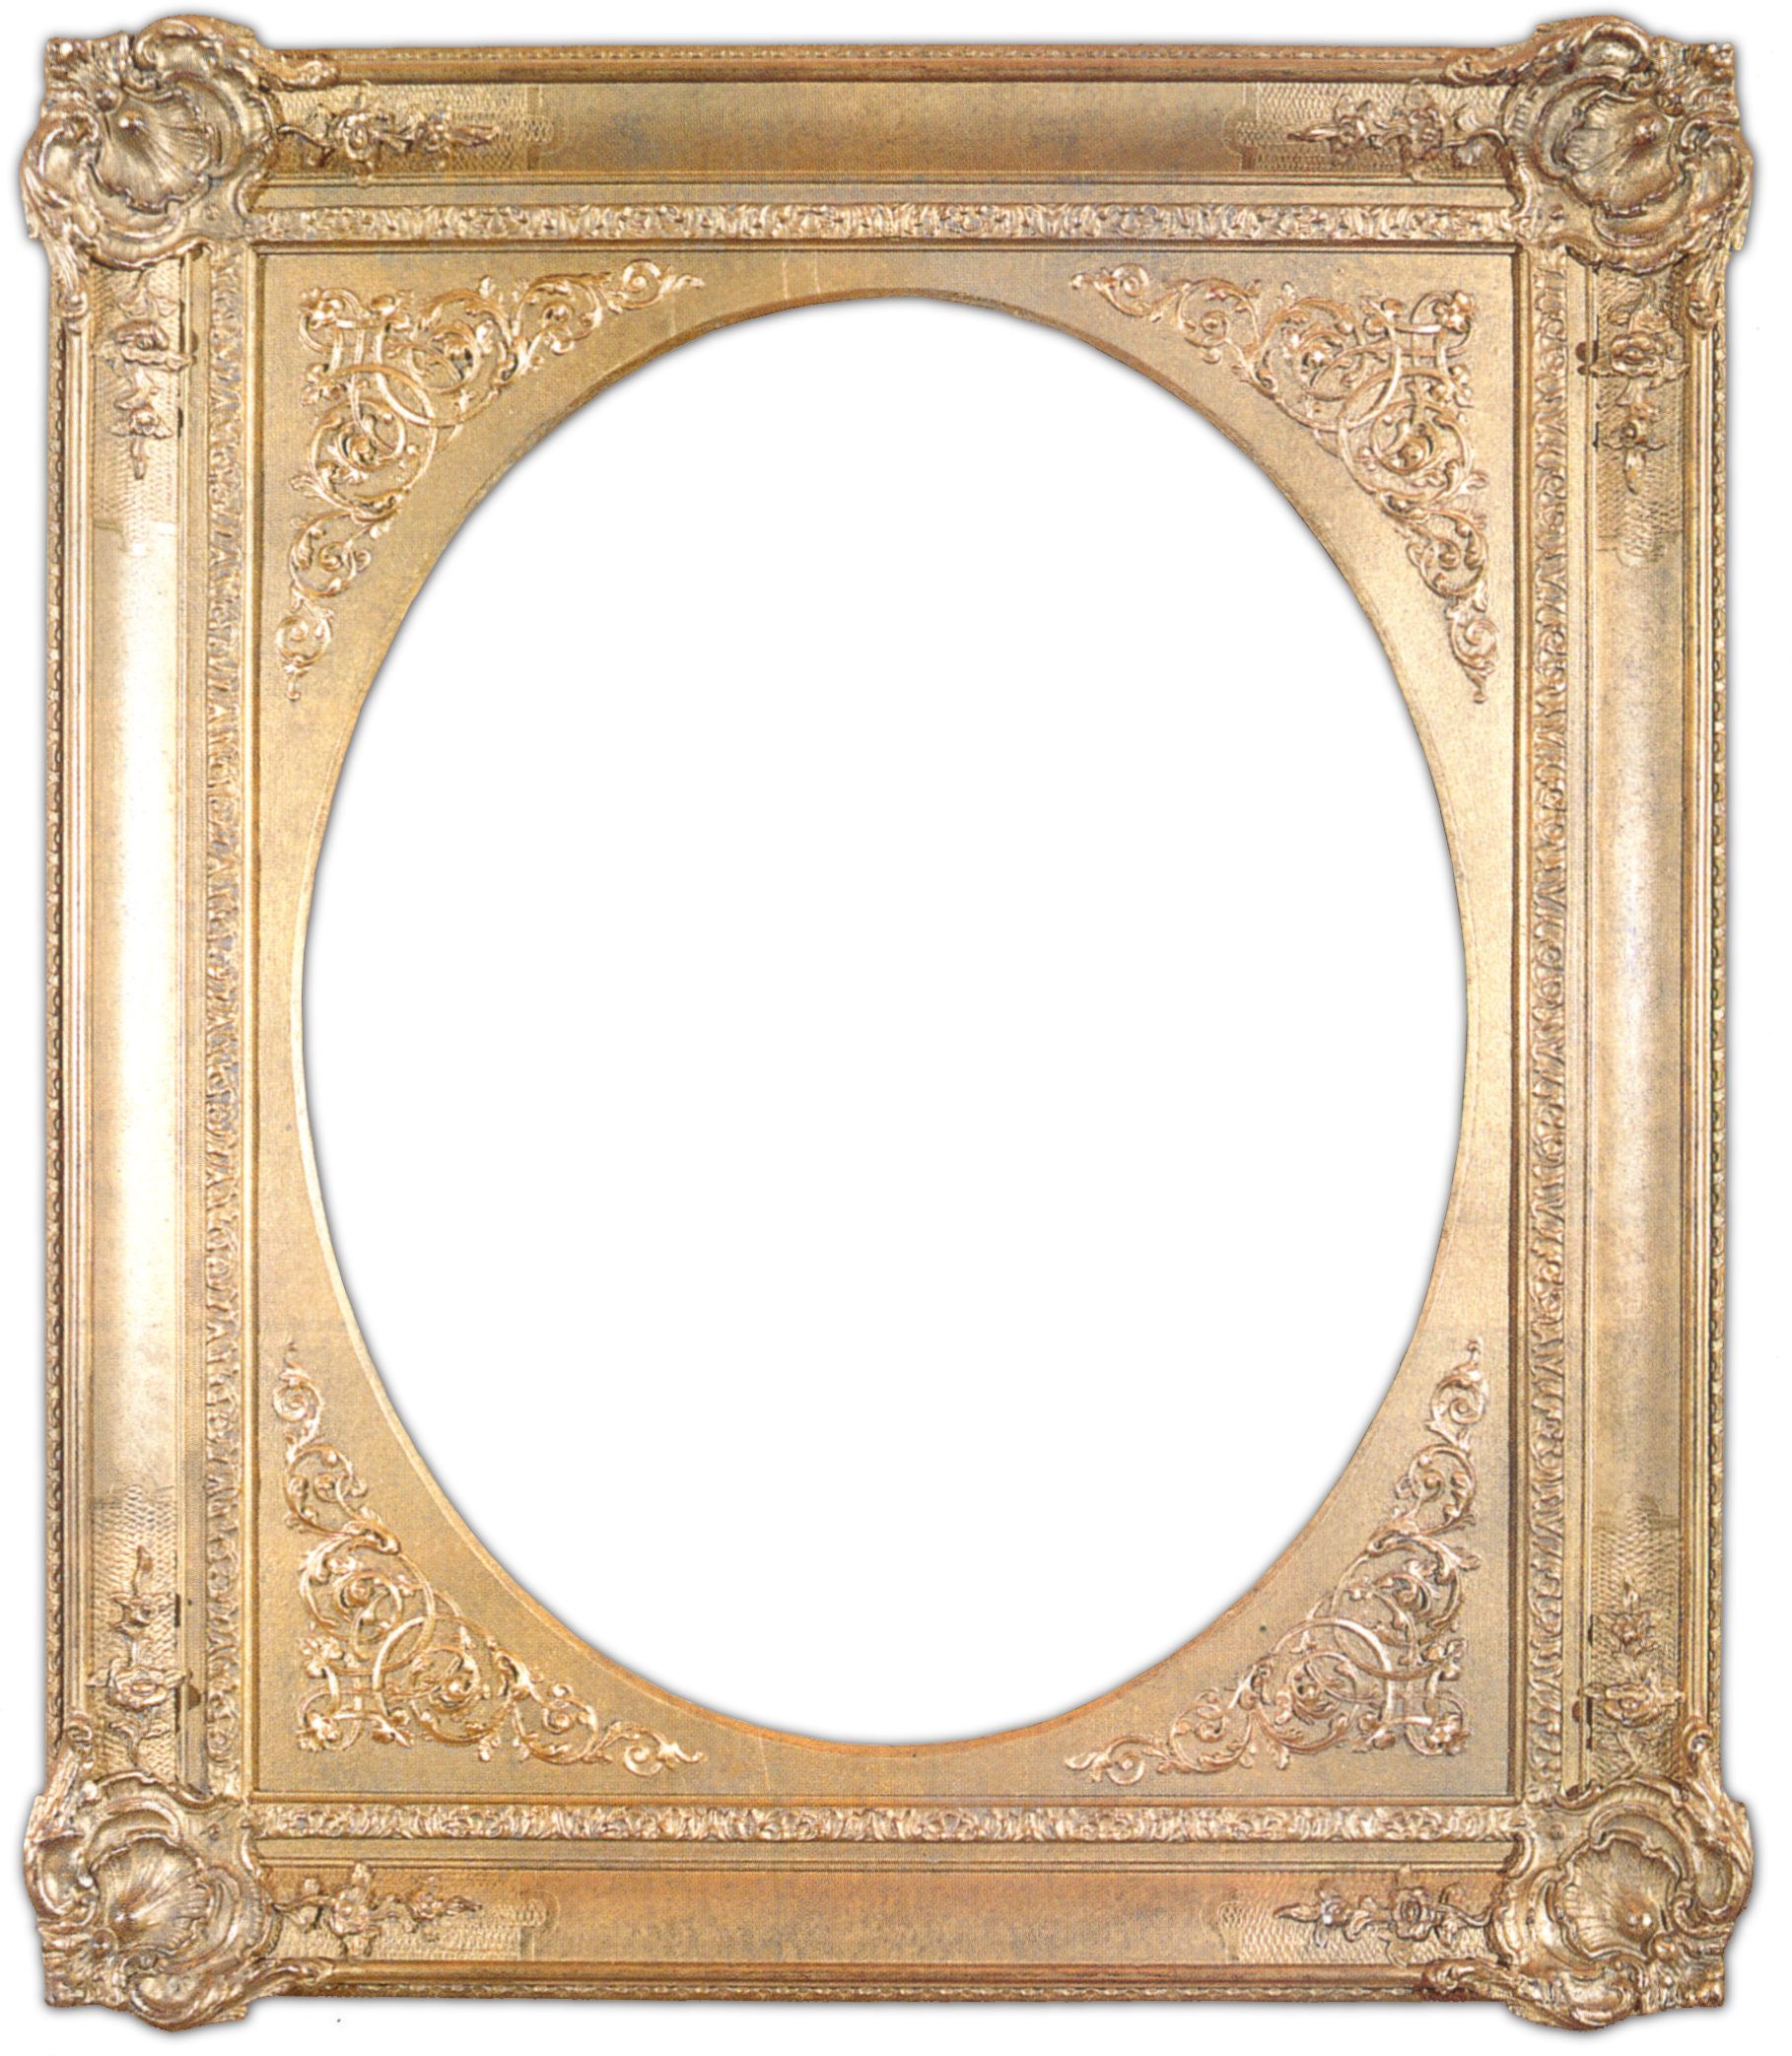 Gro artig frames photo. Silver picture frame png